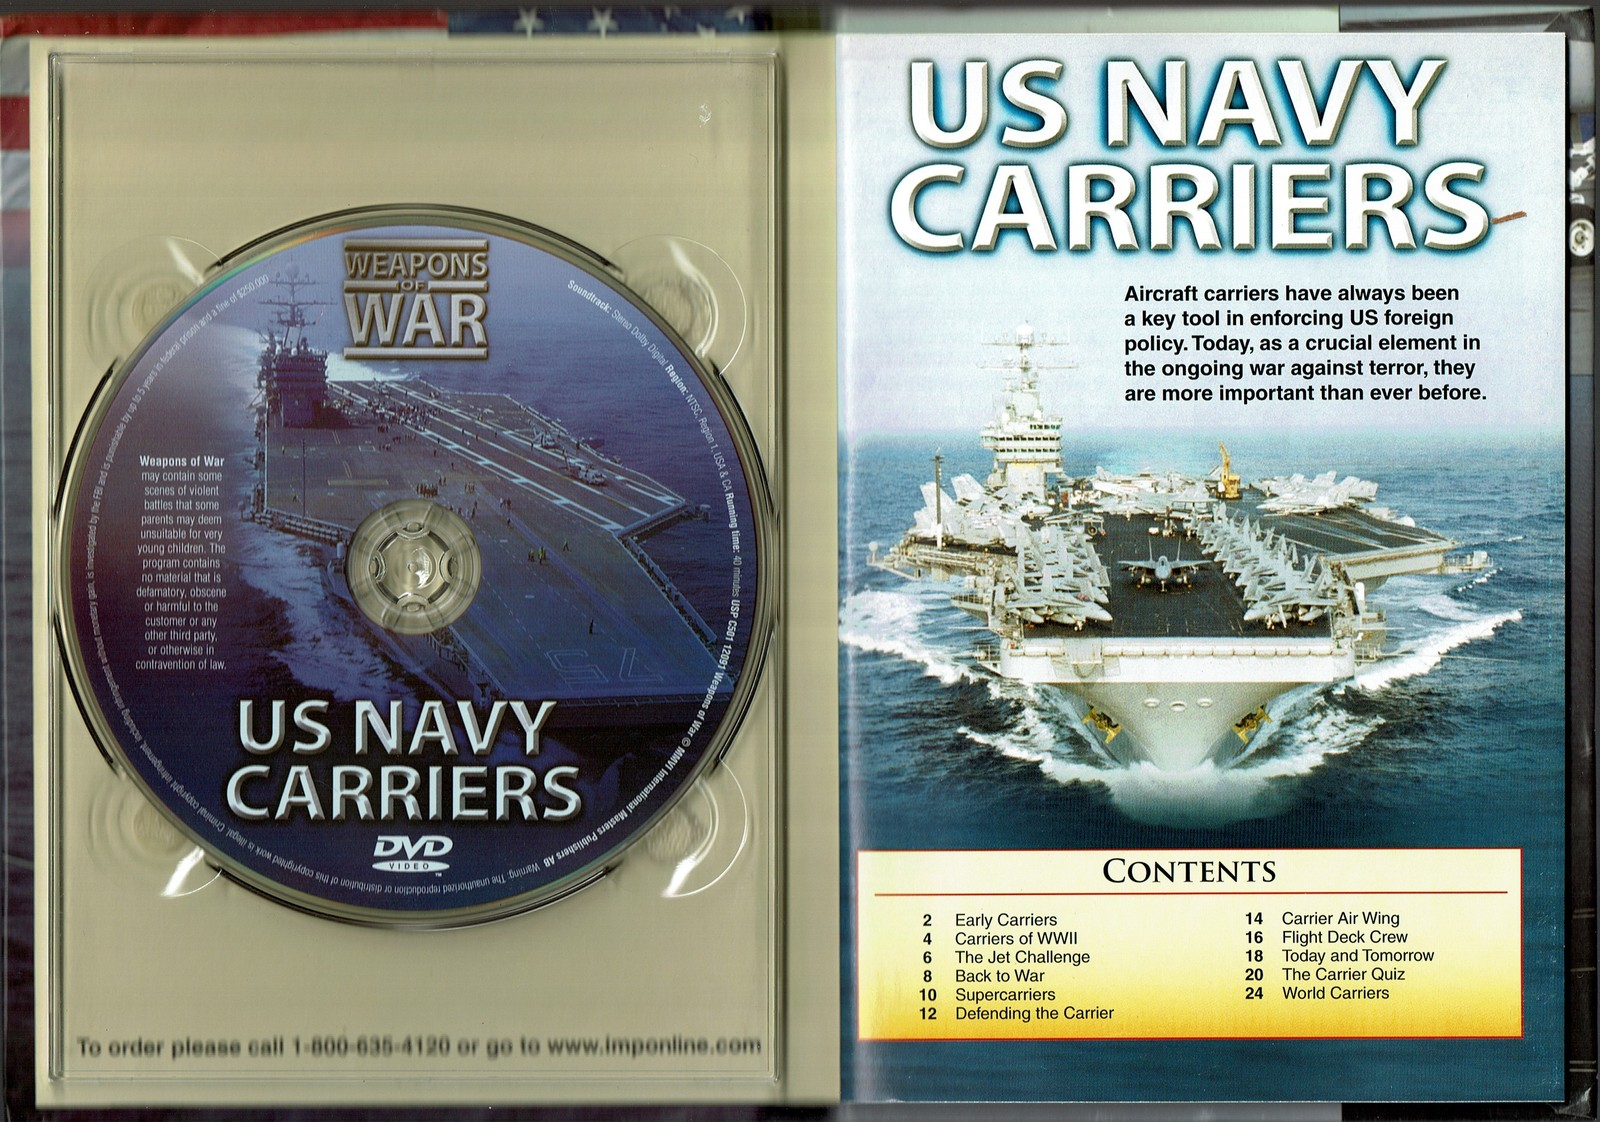 US Navy Carriers: Weapons Of War (DVD & Booklet) 2006 (Documentary)